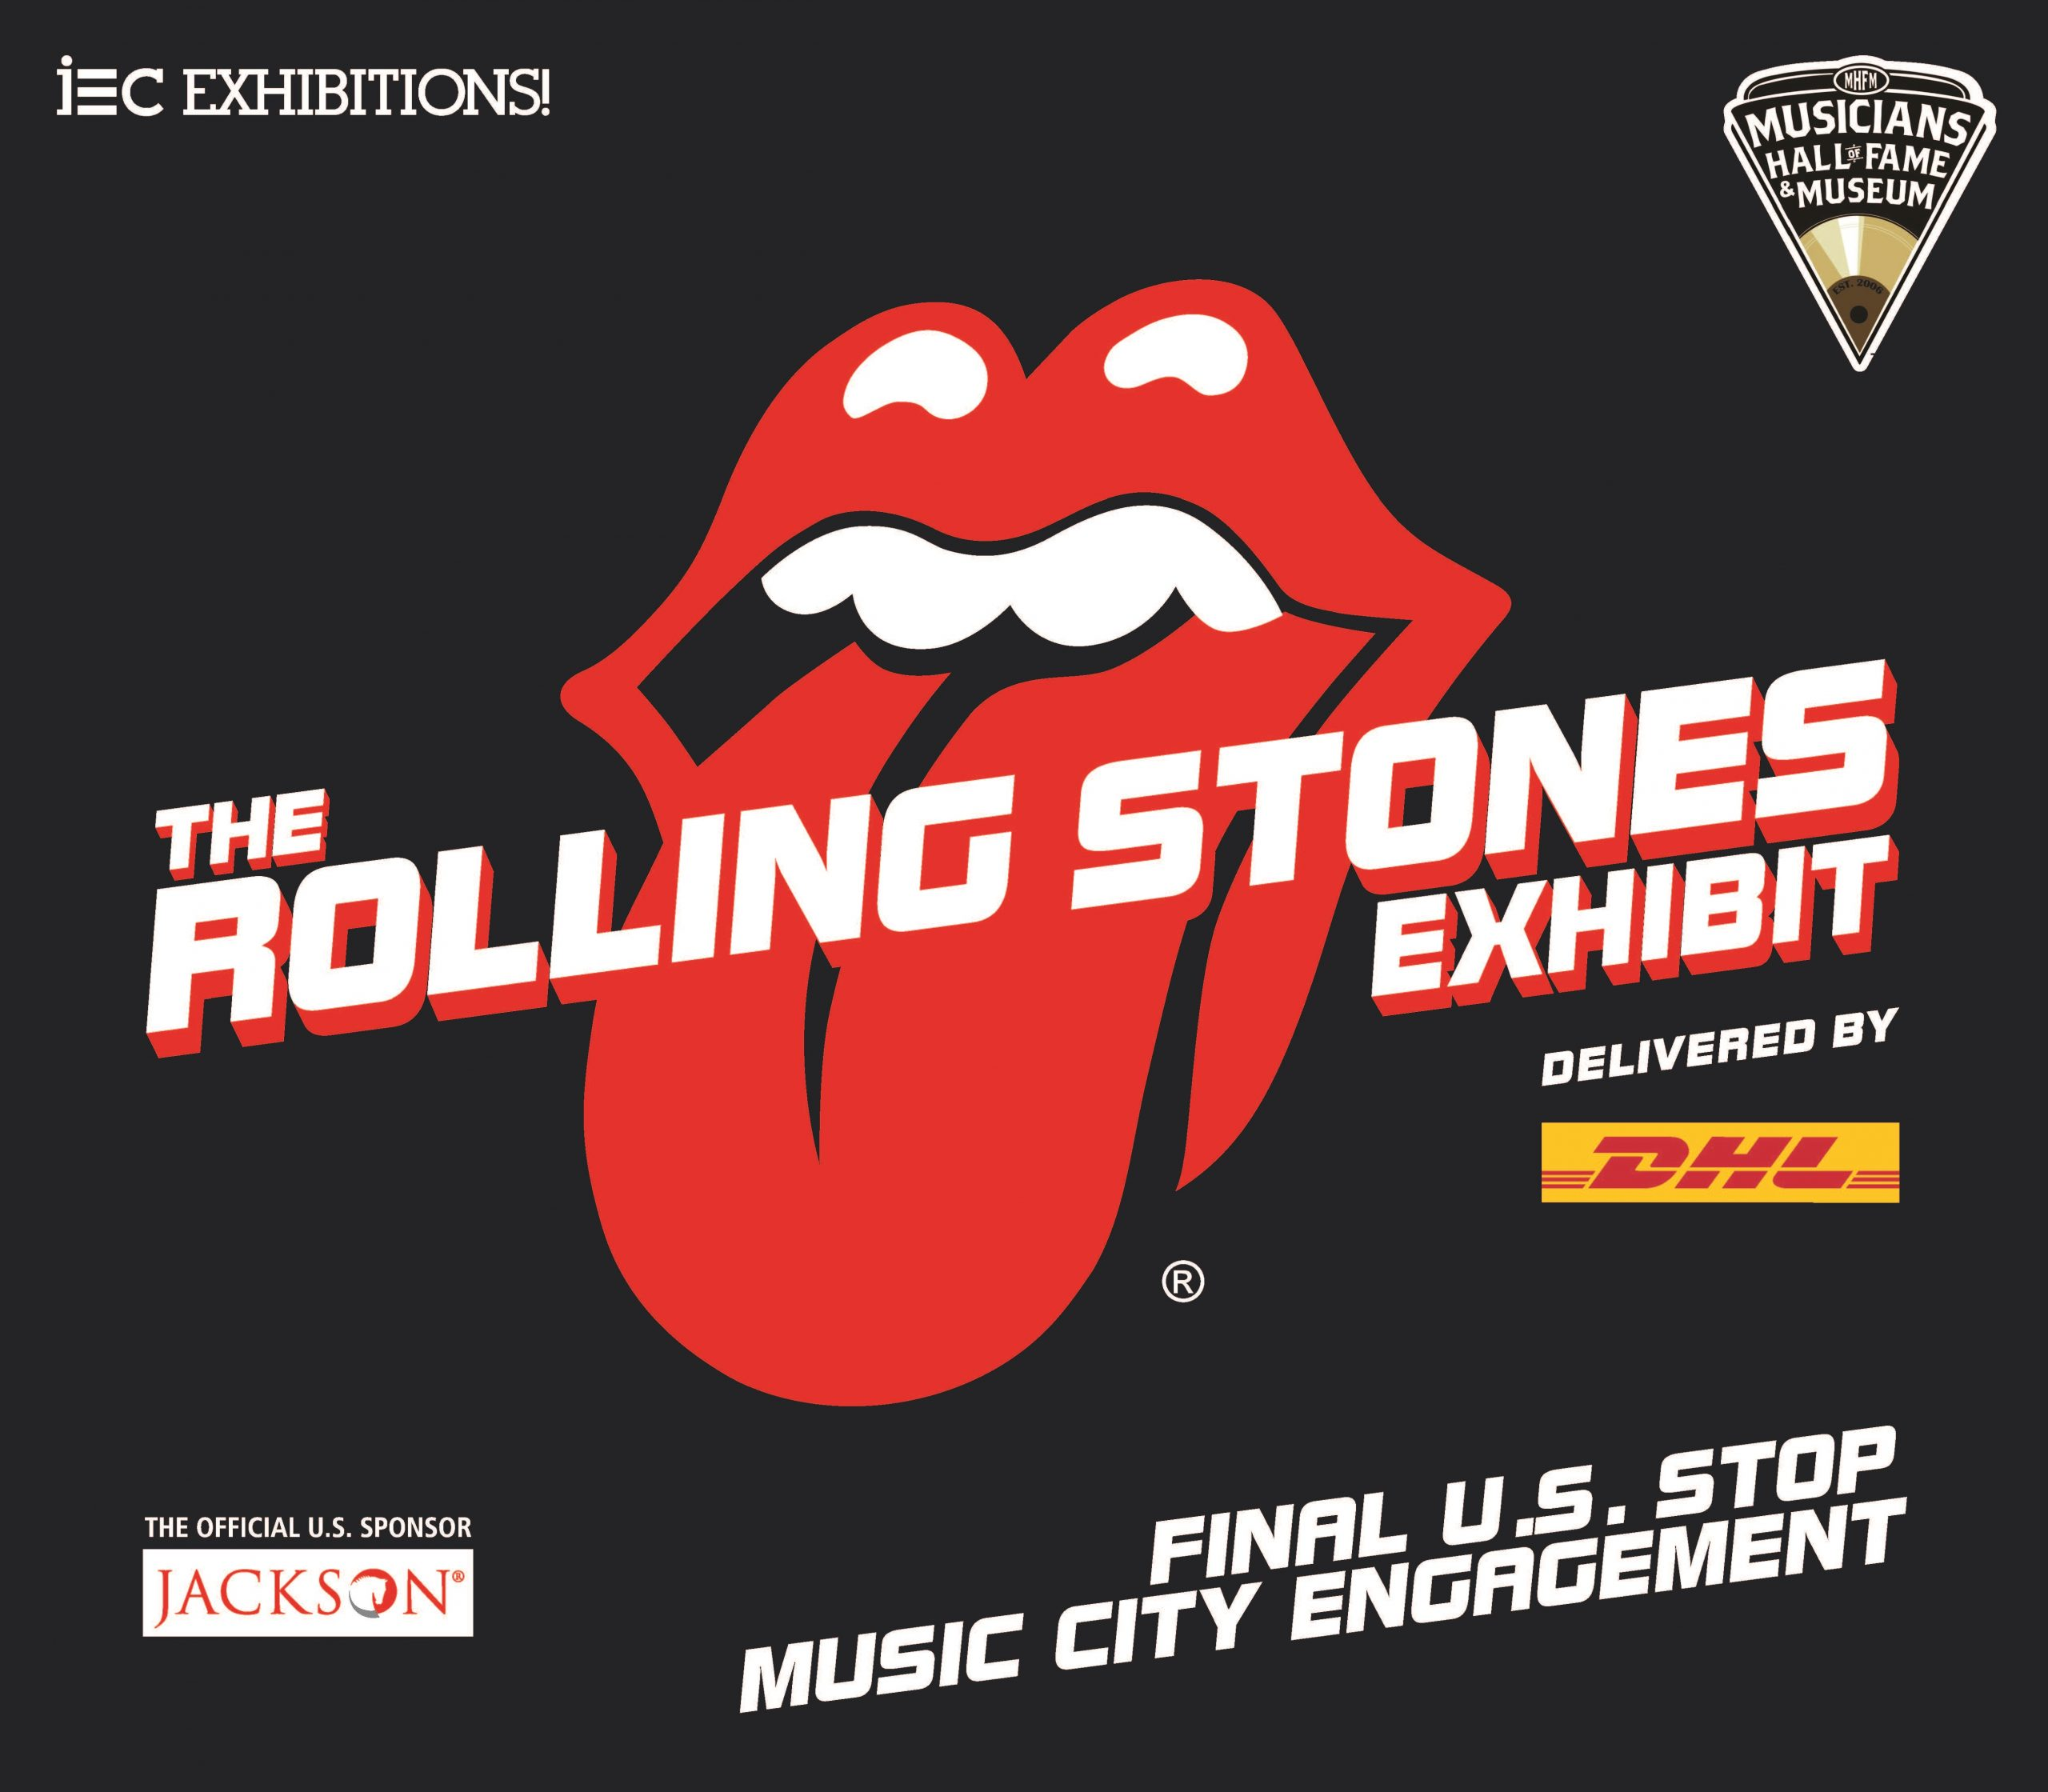 Sculptures Of The Rolling Stones Tongue And Lips Logo Invade